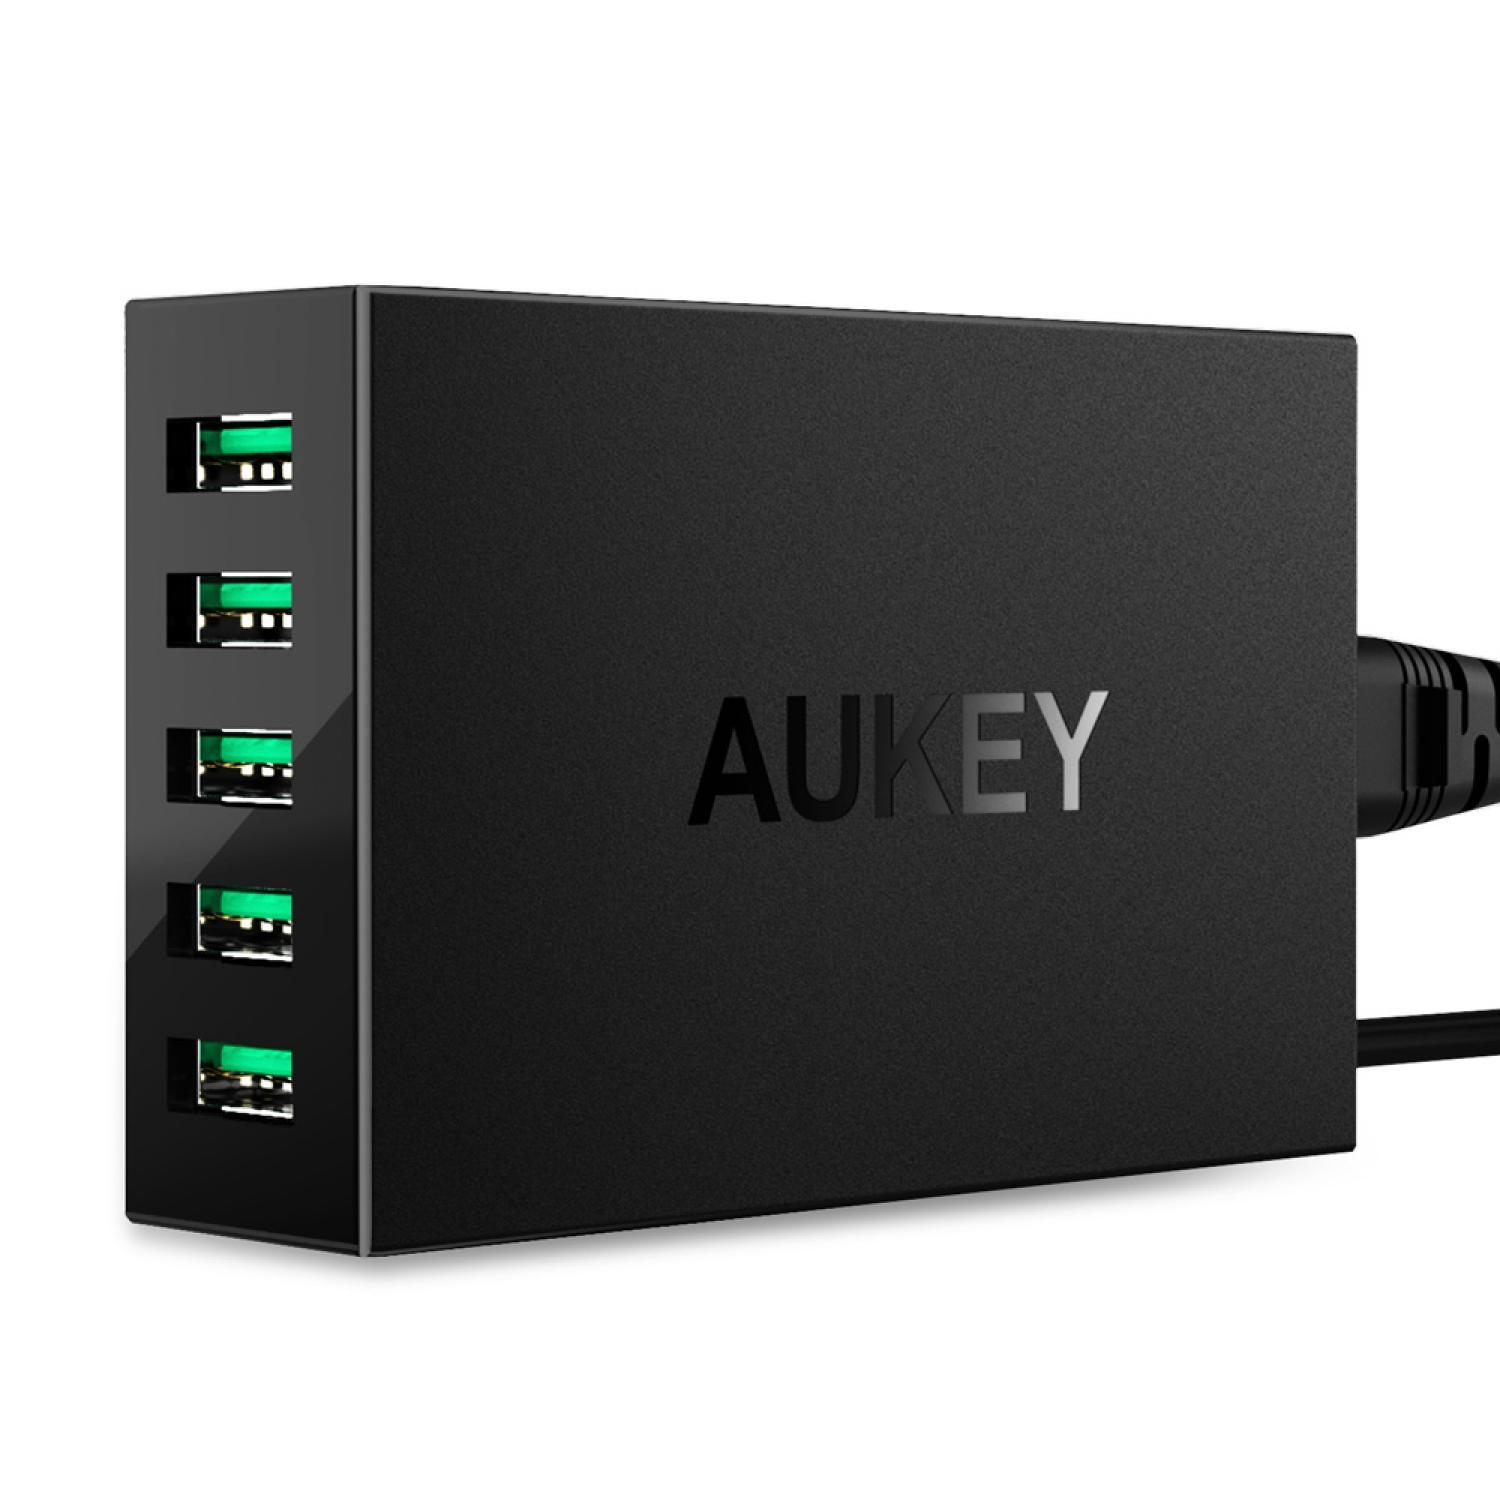 Aukey USB Charging Station 5 Port with AIPower Tech - PA-U33 Charger Mobil Murah